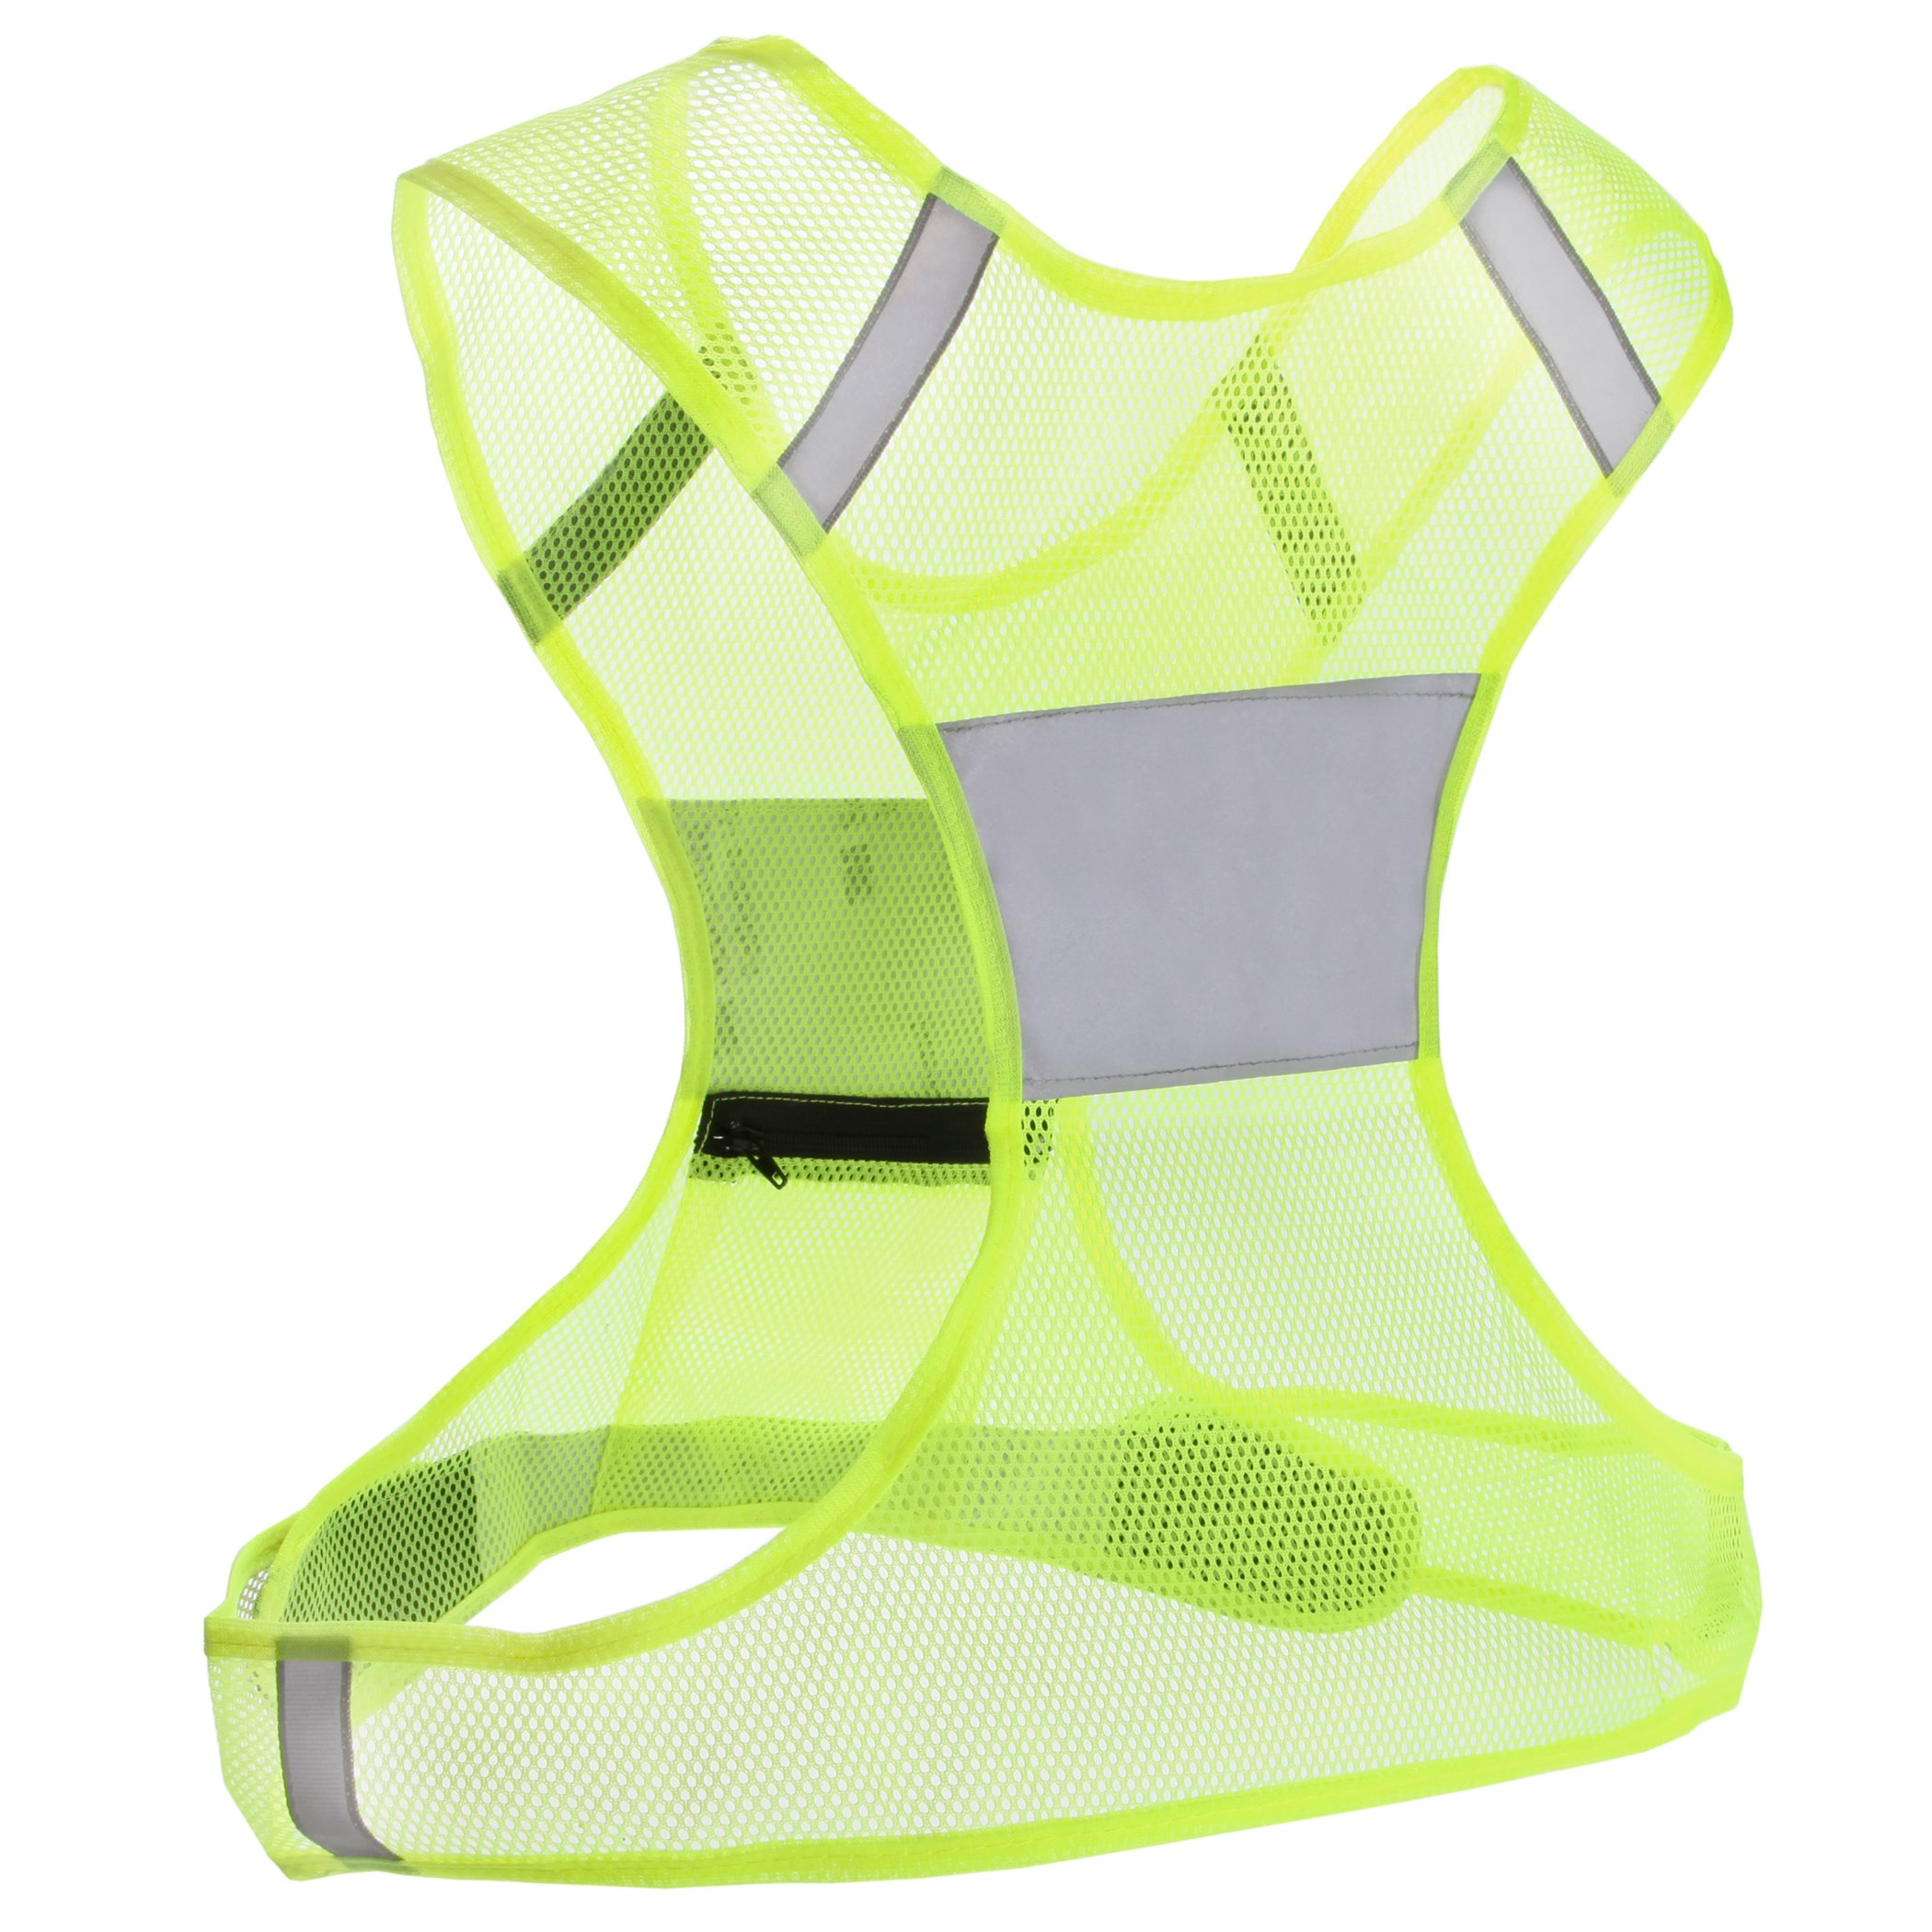 galleon reflective vest for running or cycling including two 3m safety reflective bands women. Black Bedroom Furniture Sets. Home Design Ideas